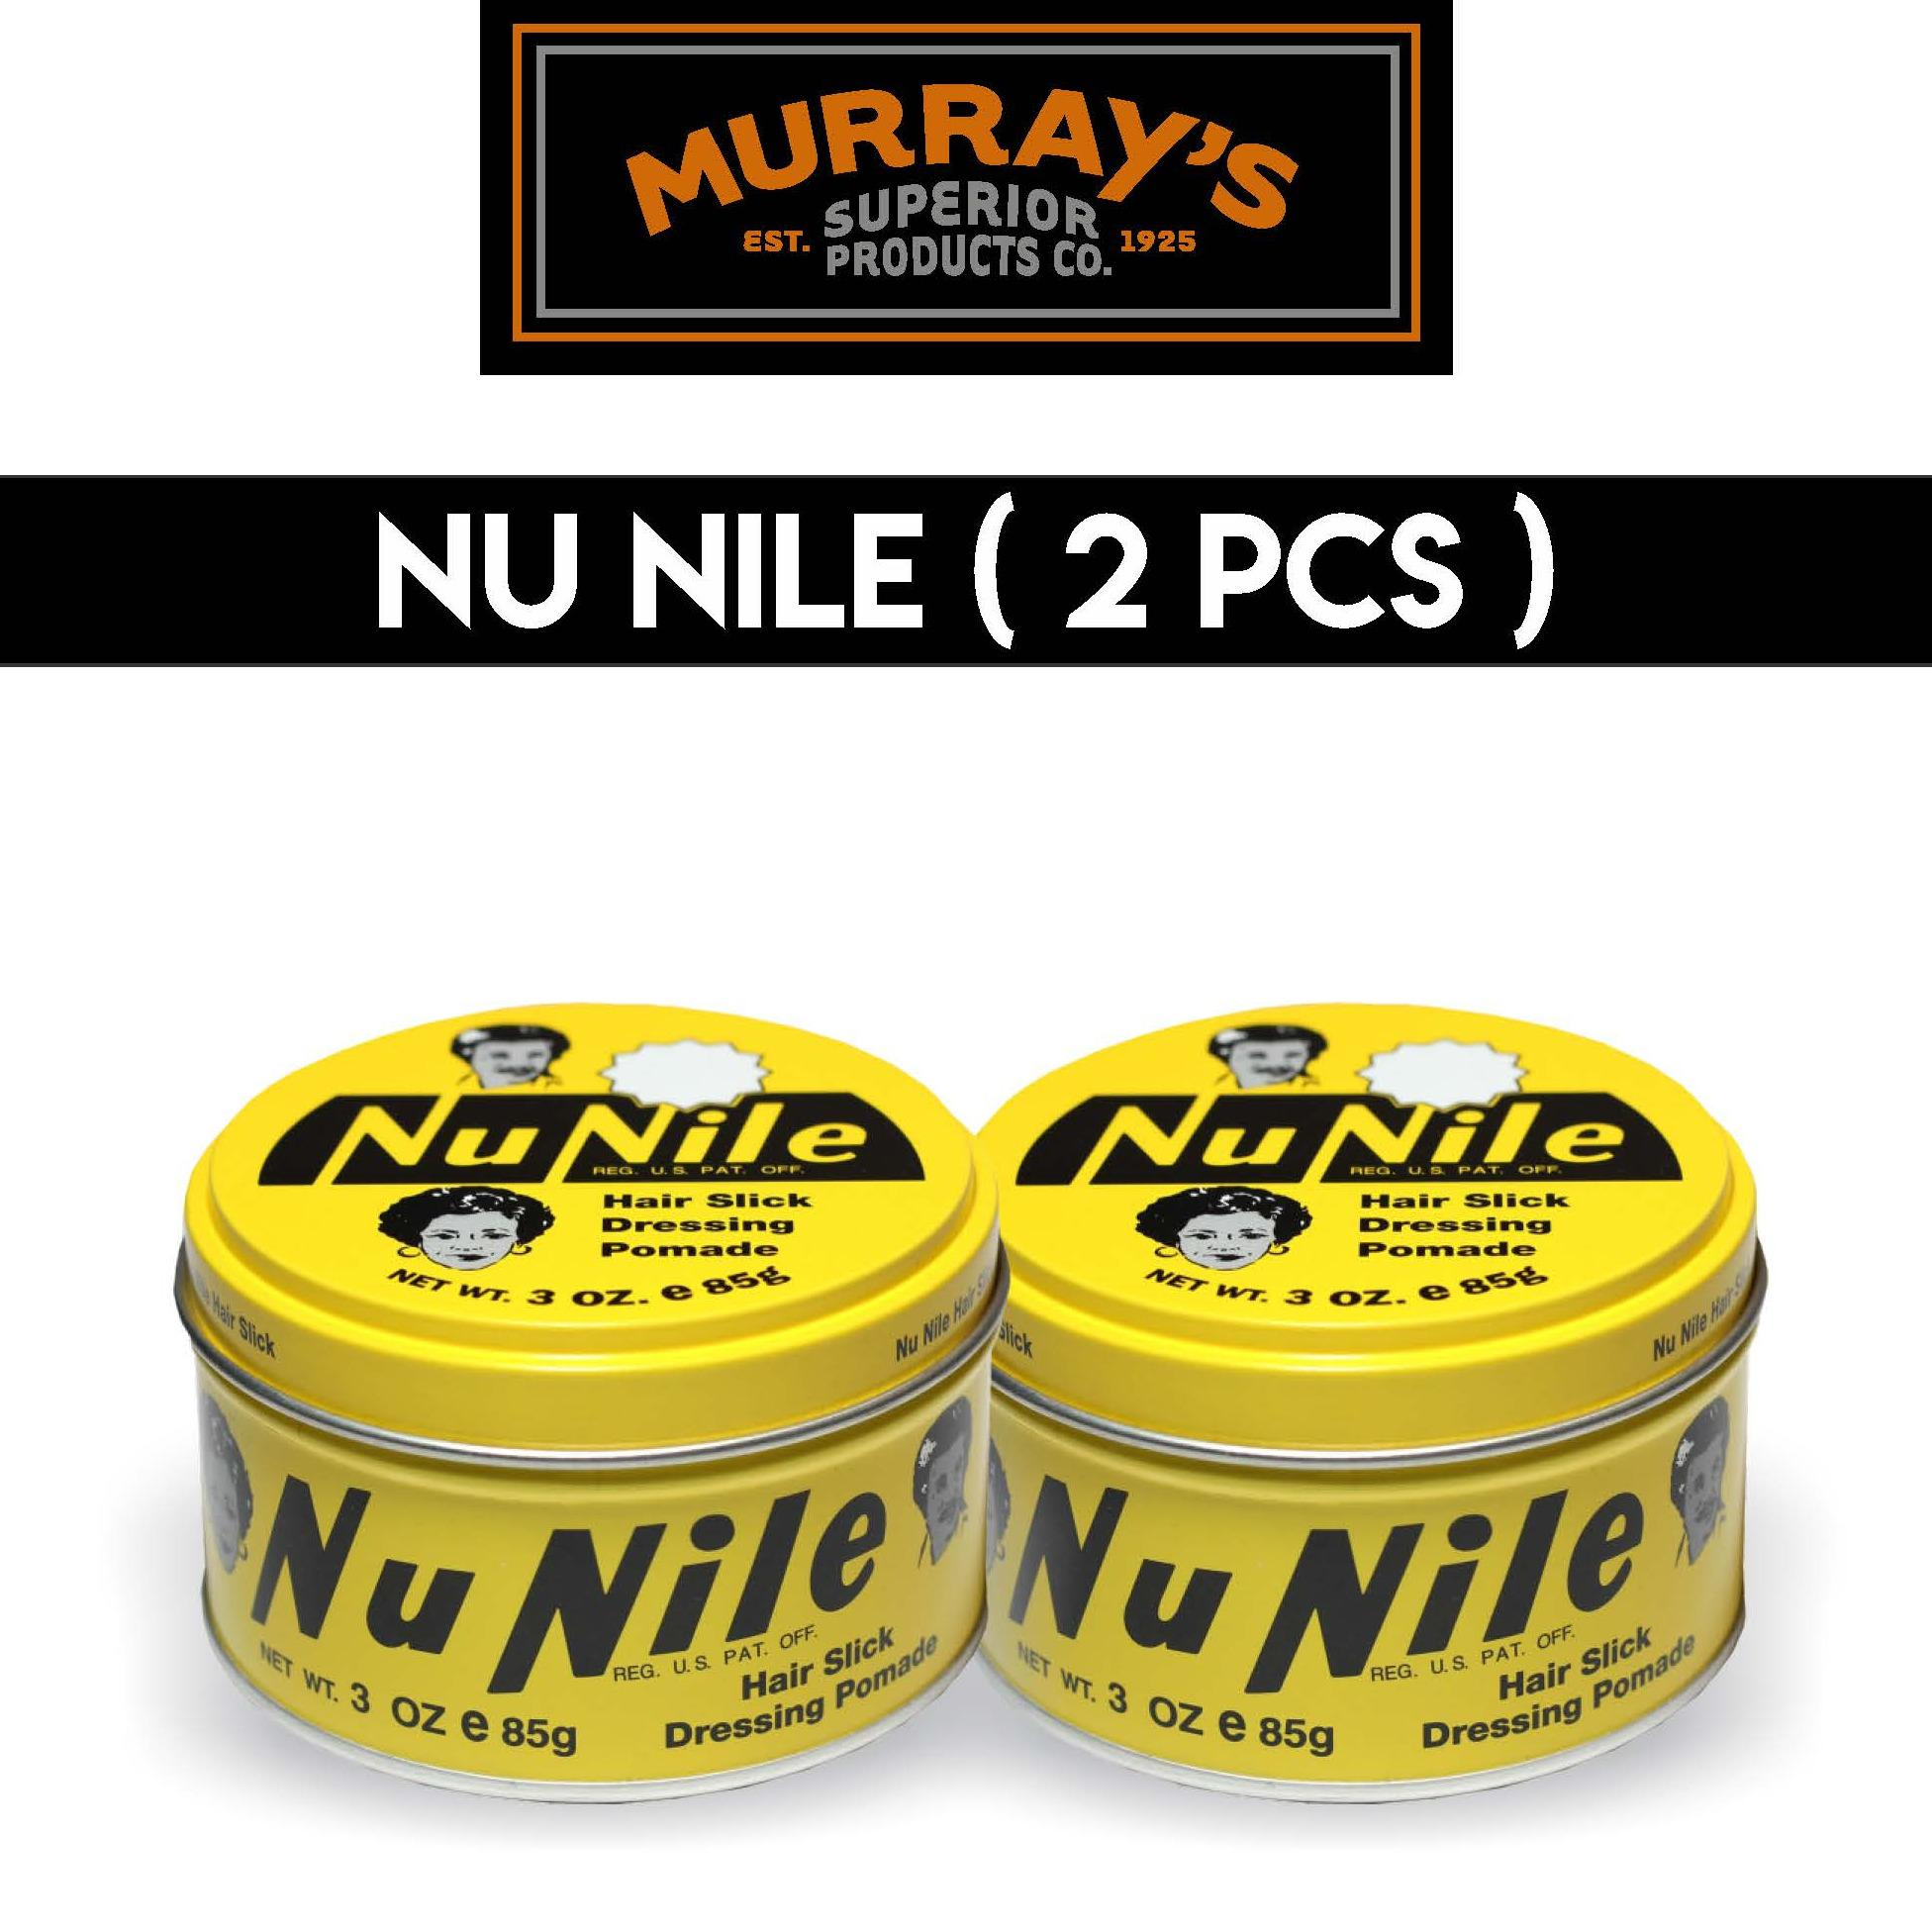 Buy Sell Cheapest Murrays Nunile Pomade Best Quality Product Deals Bundling 2 Pcs